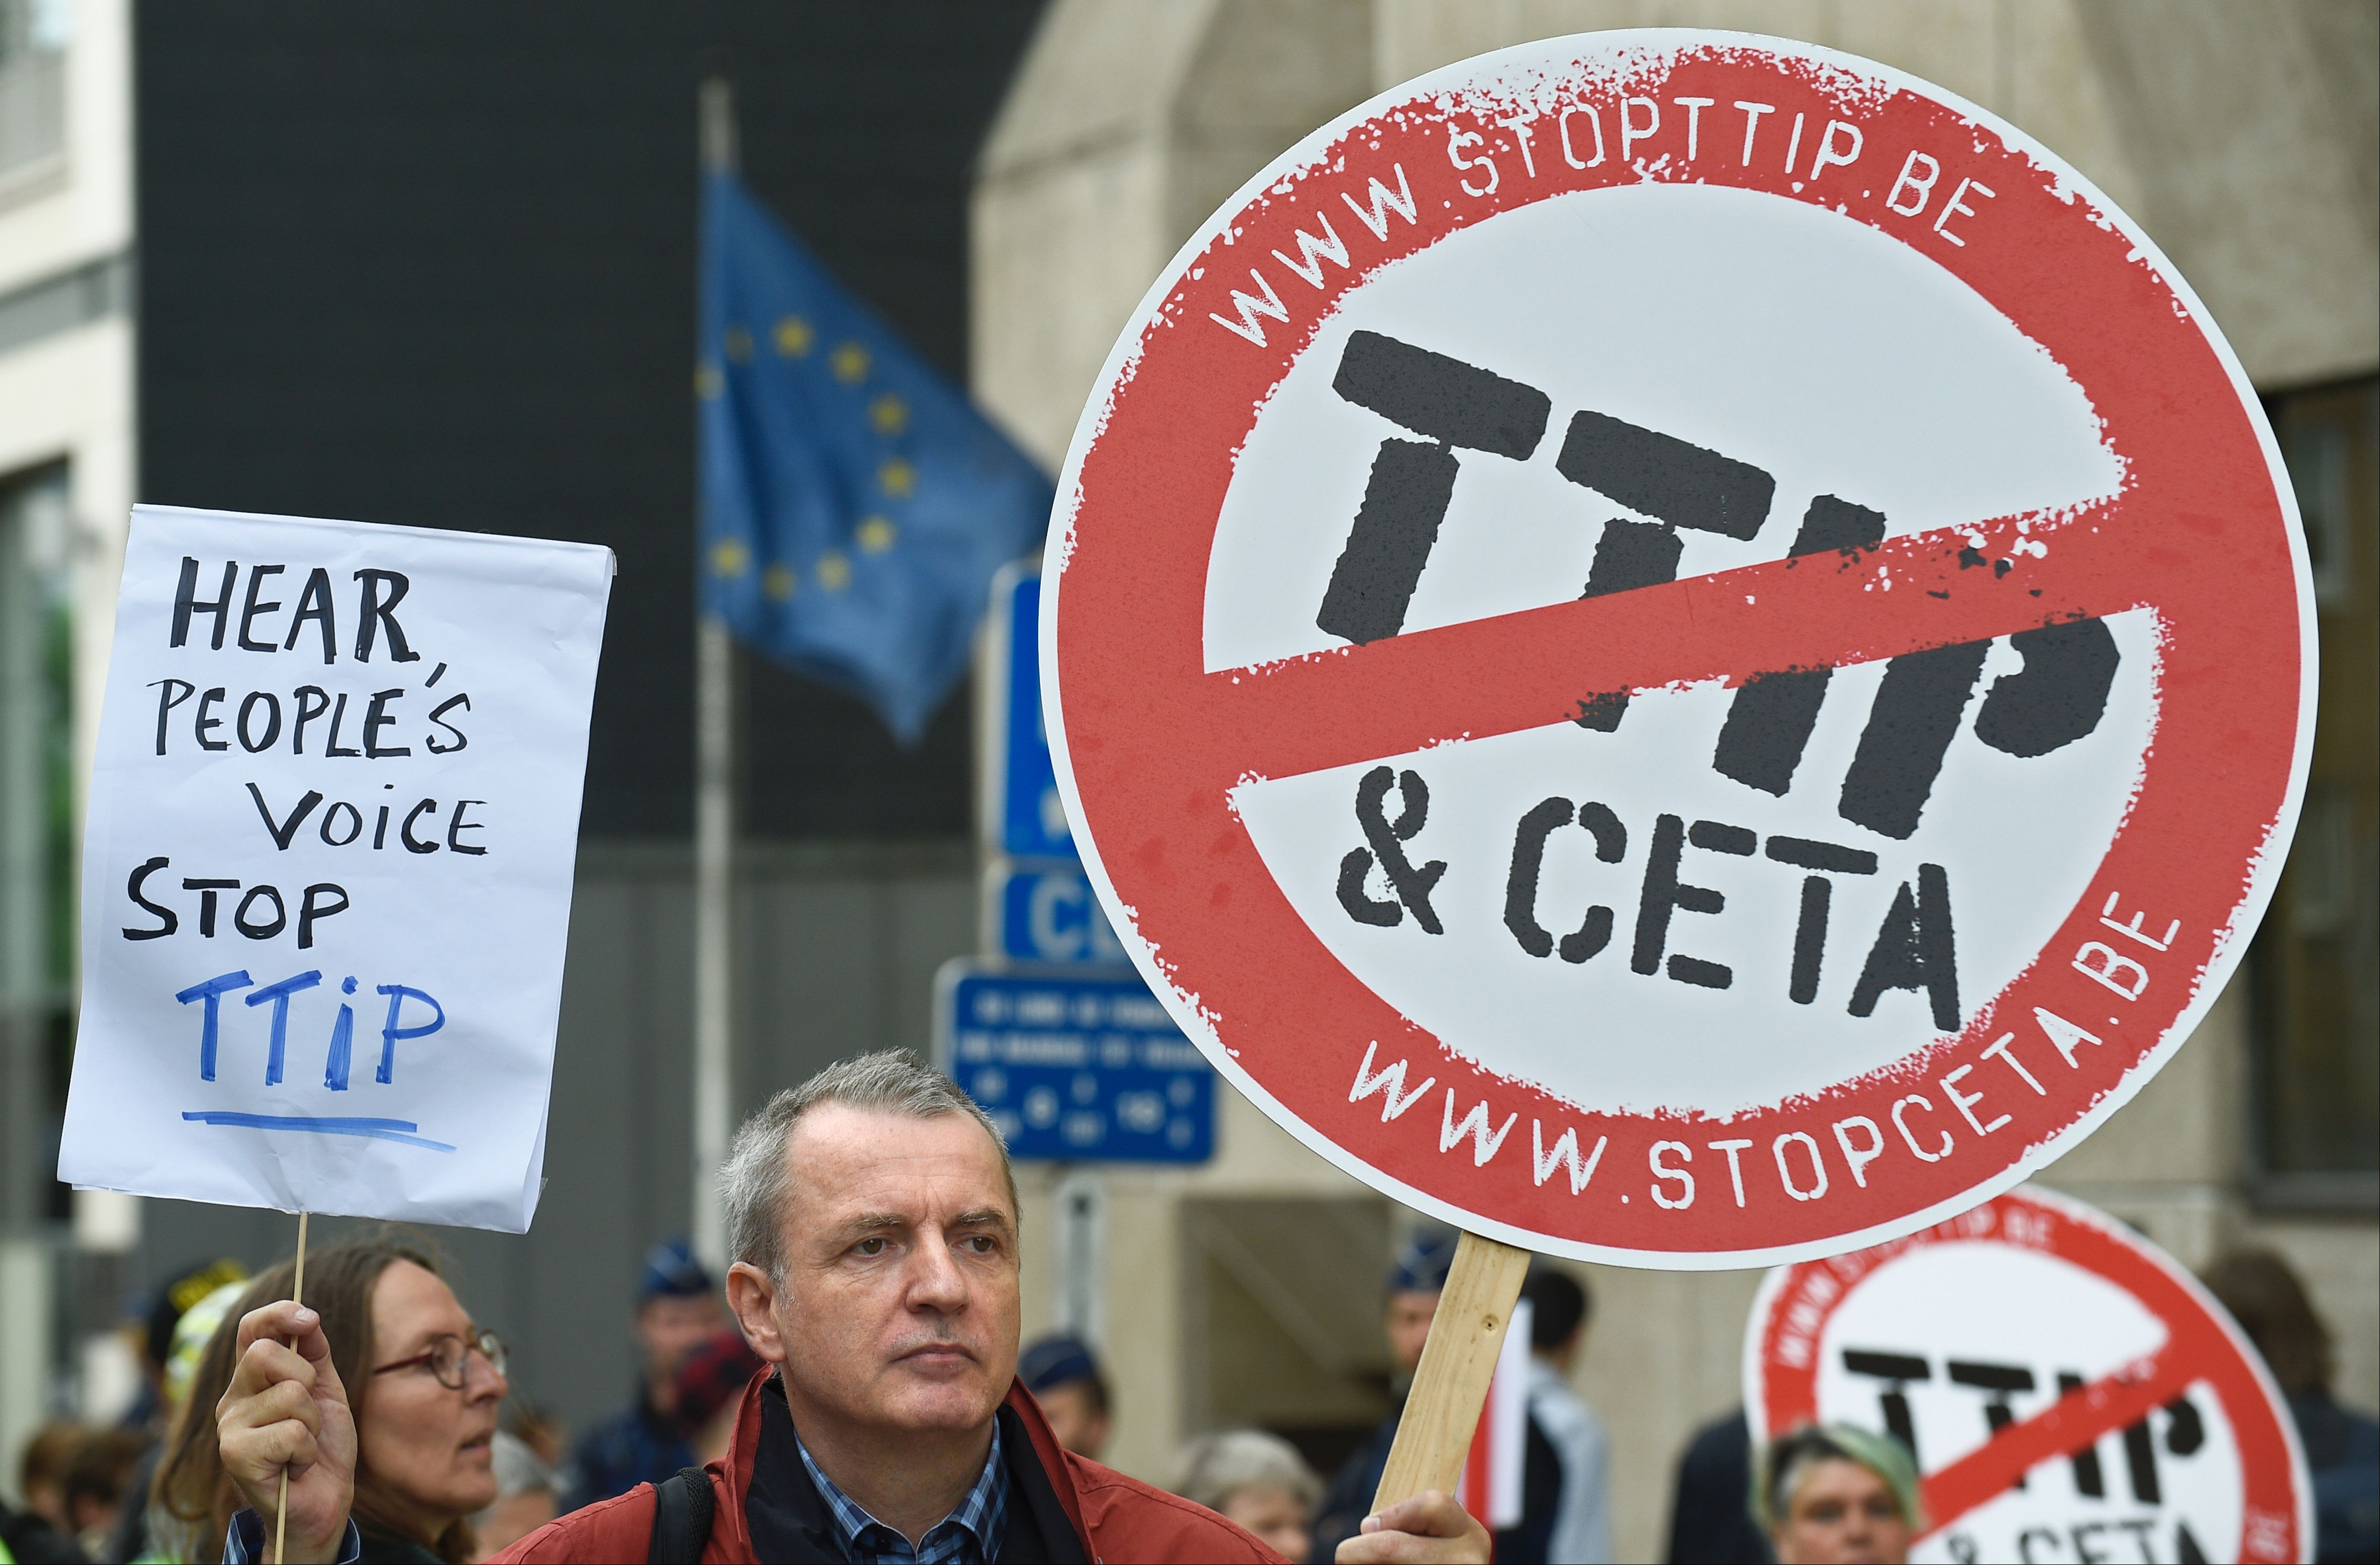 Activists hold banners during a protest against the Transatlantic Trade and Investment Partnership (TTIP) in front of the EU commission building in Brussels.